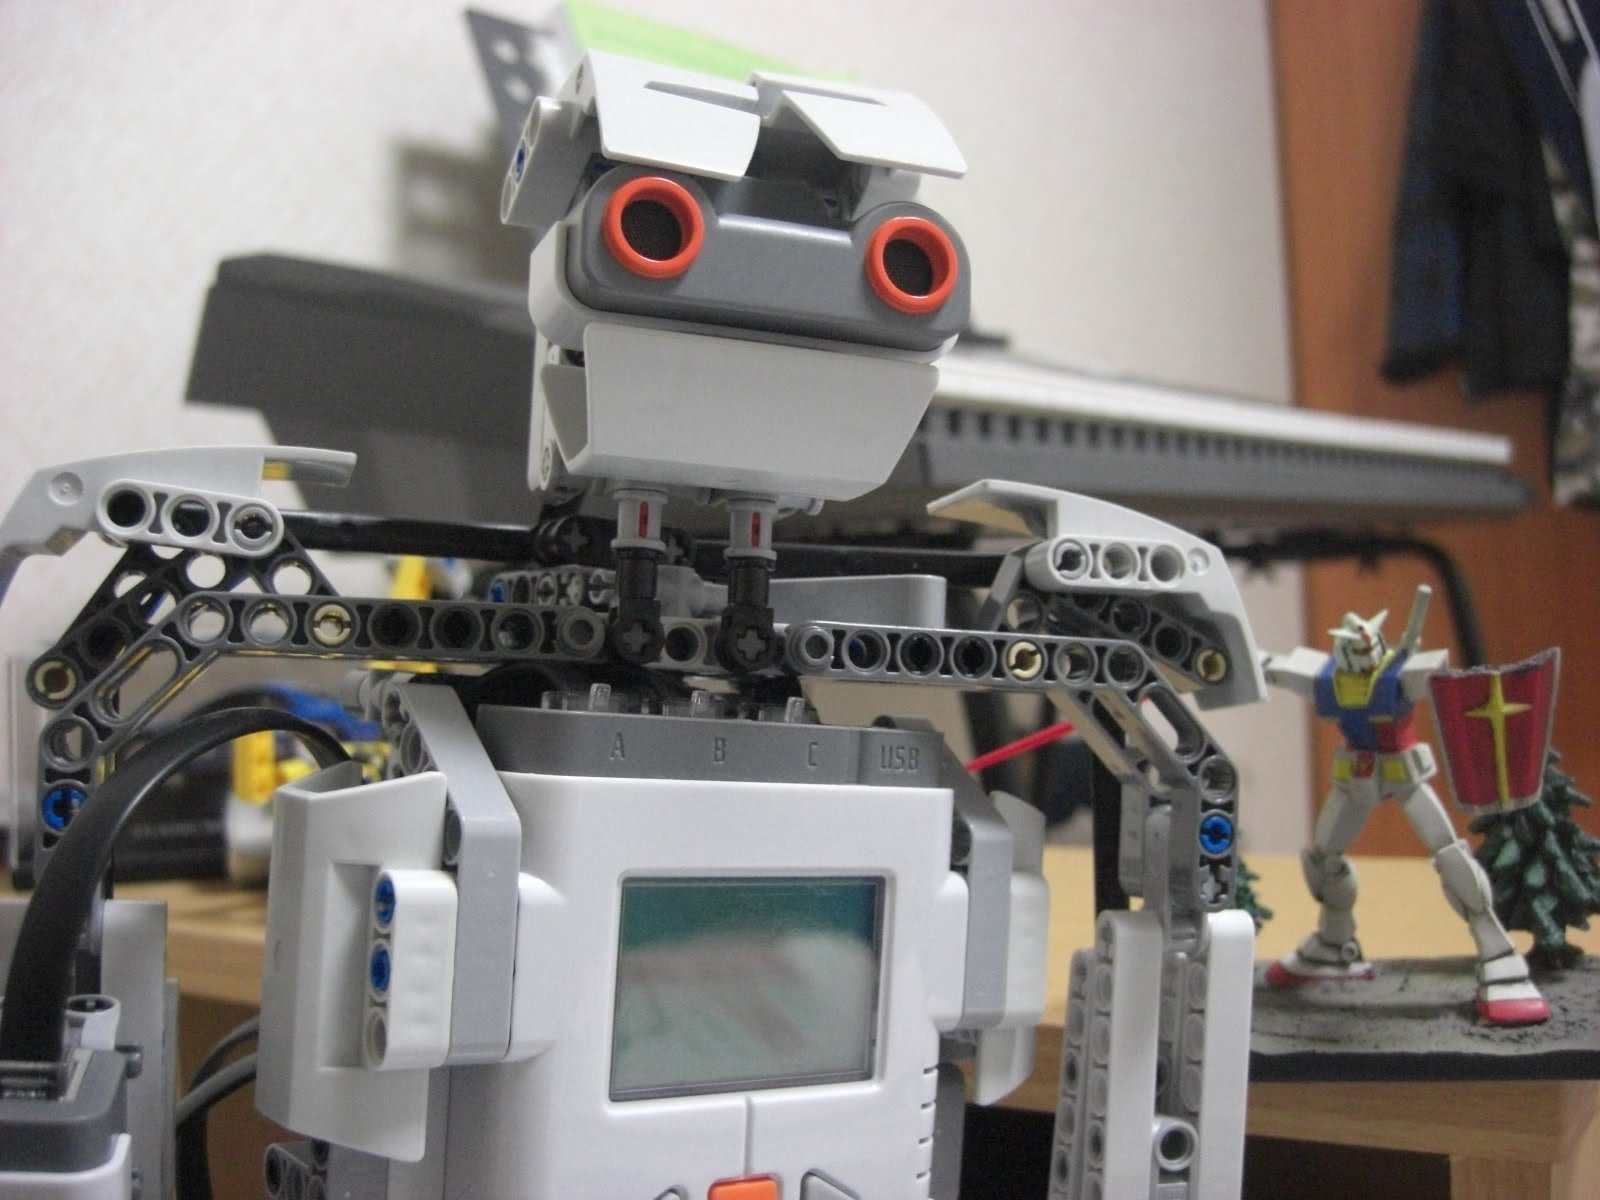 Lego Mindstorms Nxt 20 Shooterbot Instructions Pdf